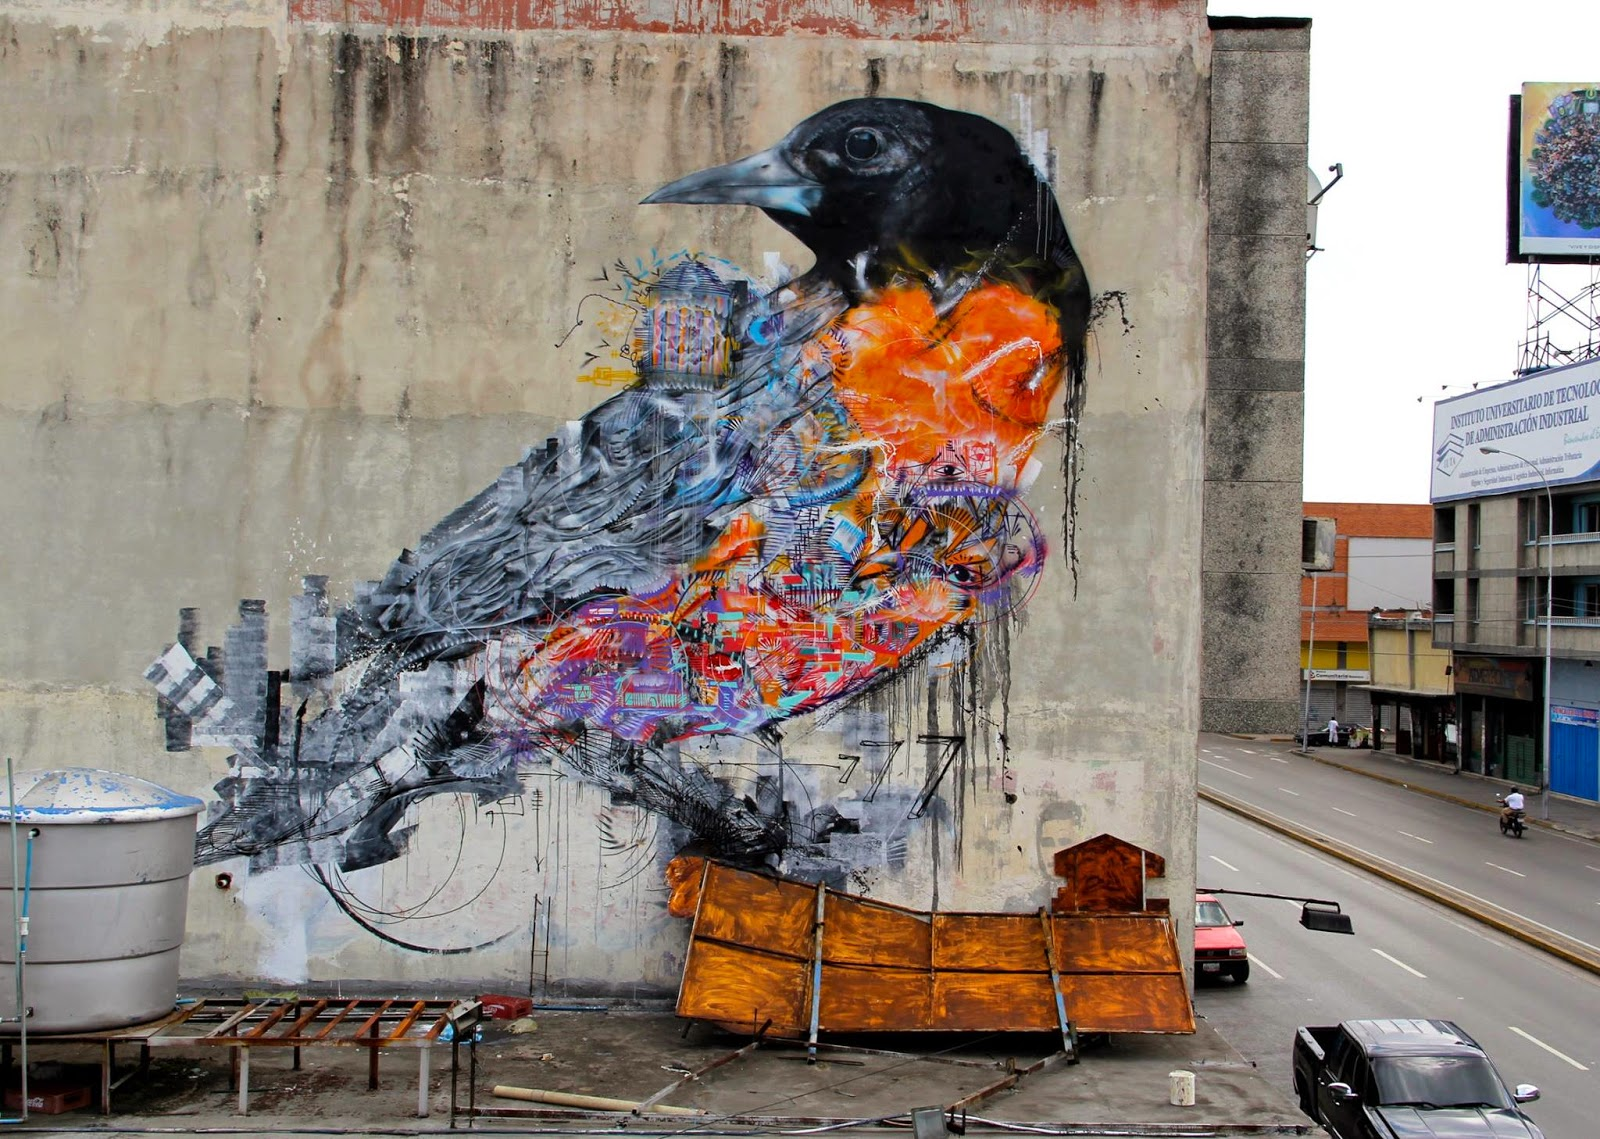 Brazilian muralist L7M is currently in Venezuela where he just wrapped up his first 2015 mural somewhere on the streets of Maracay.